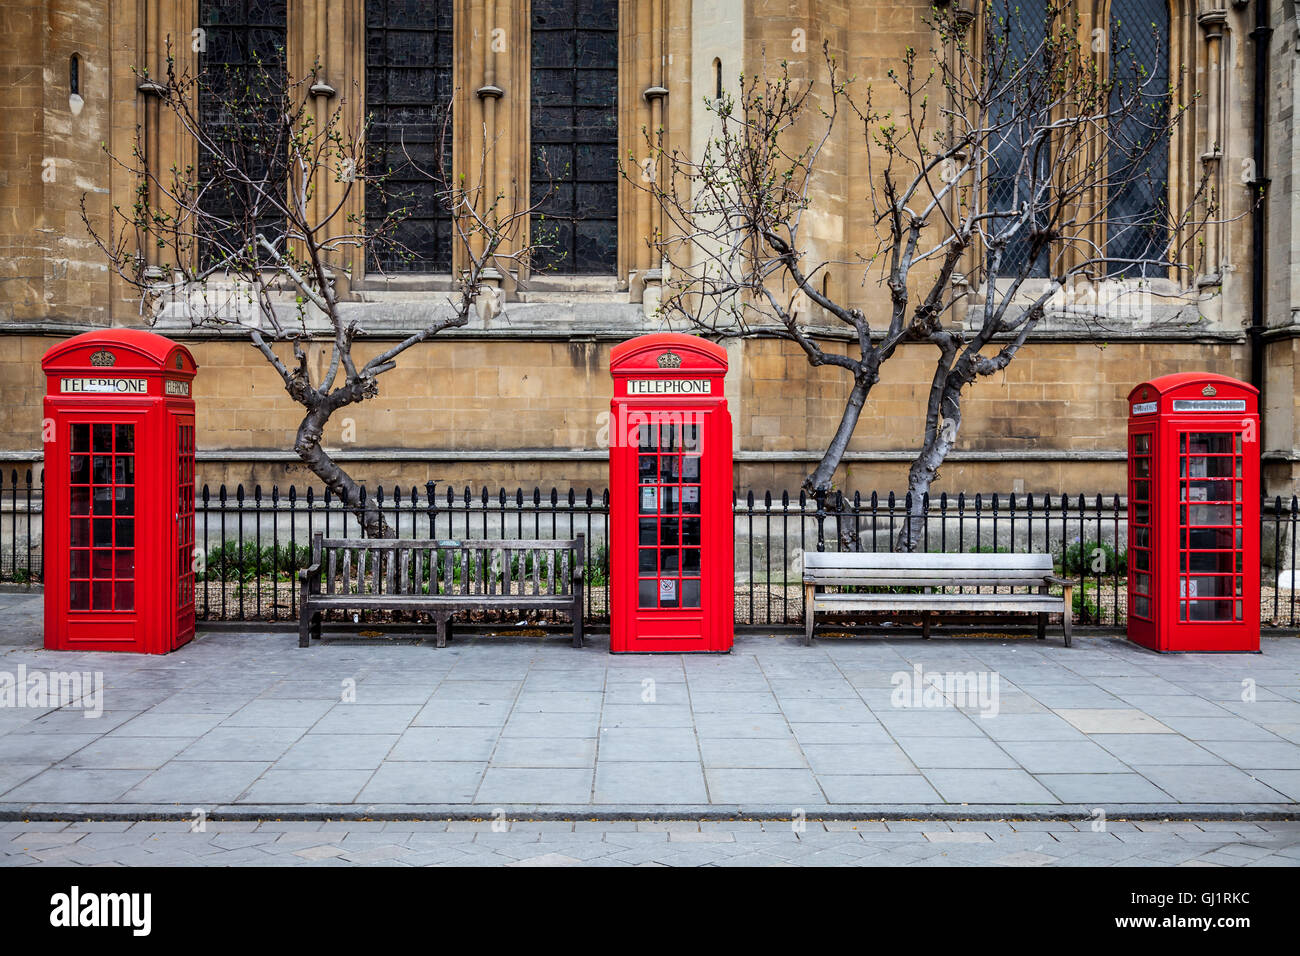 Three British red telephone boxes in front of a church. Bare trees and benches between them. - Stock Image